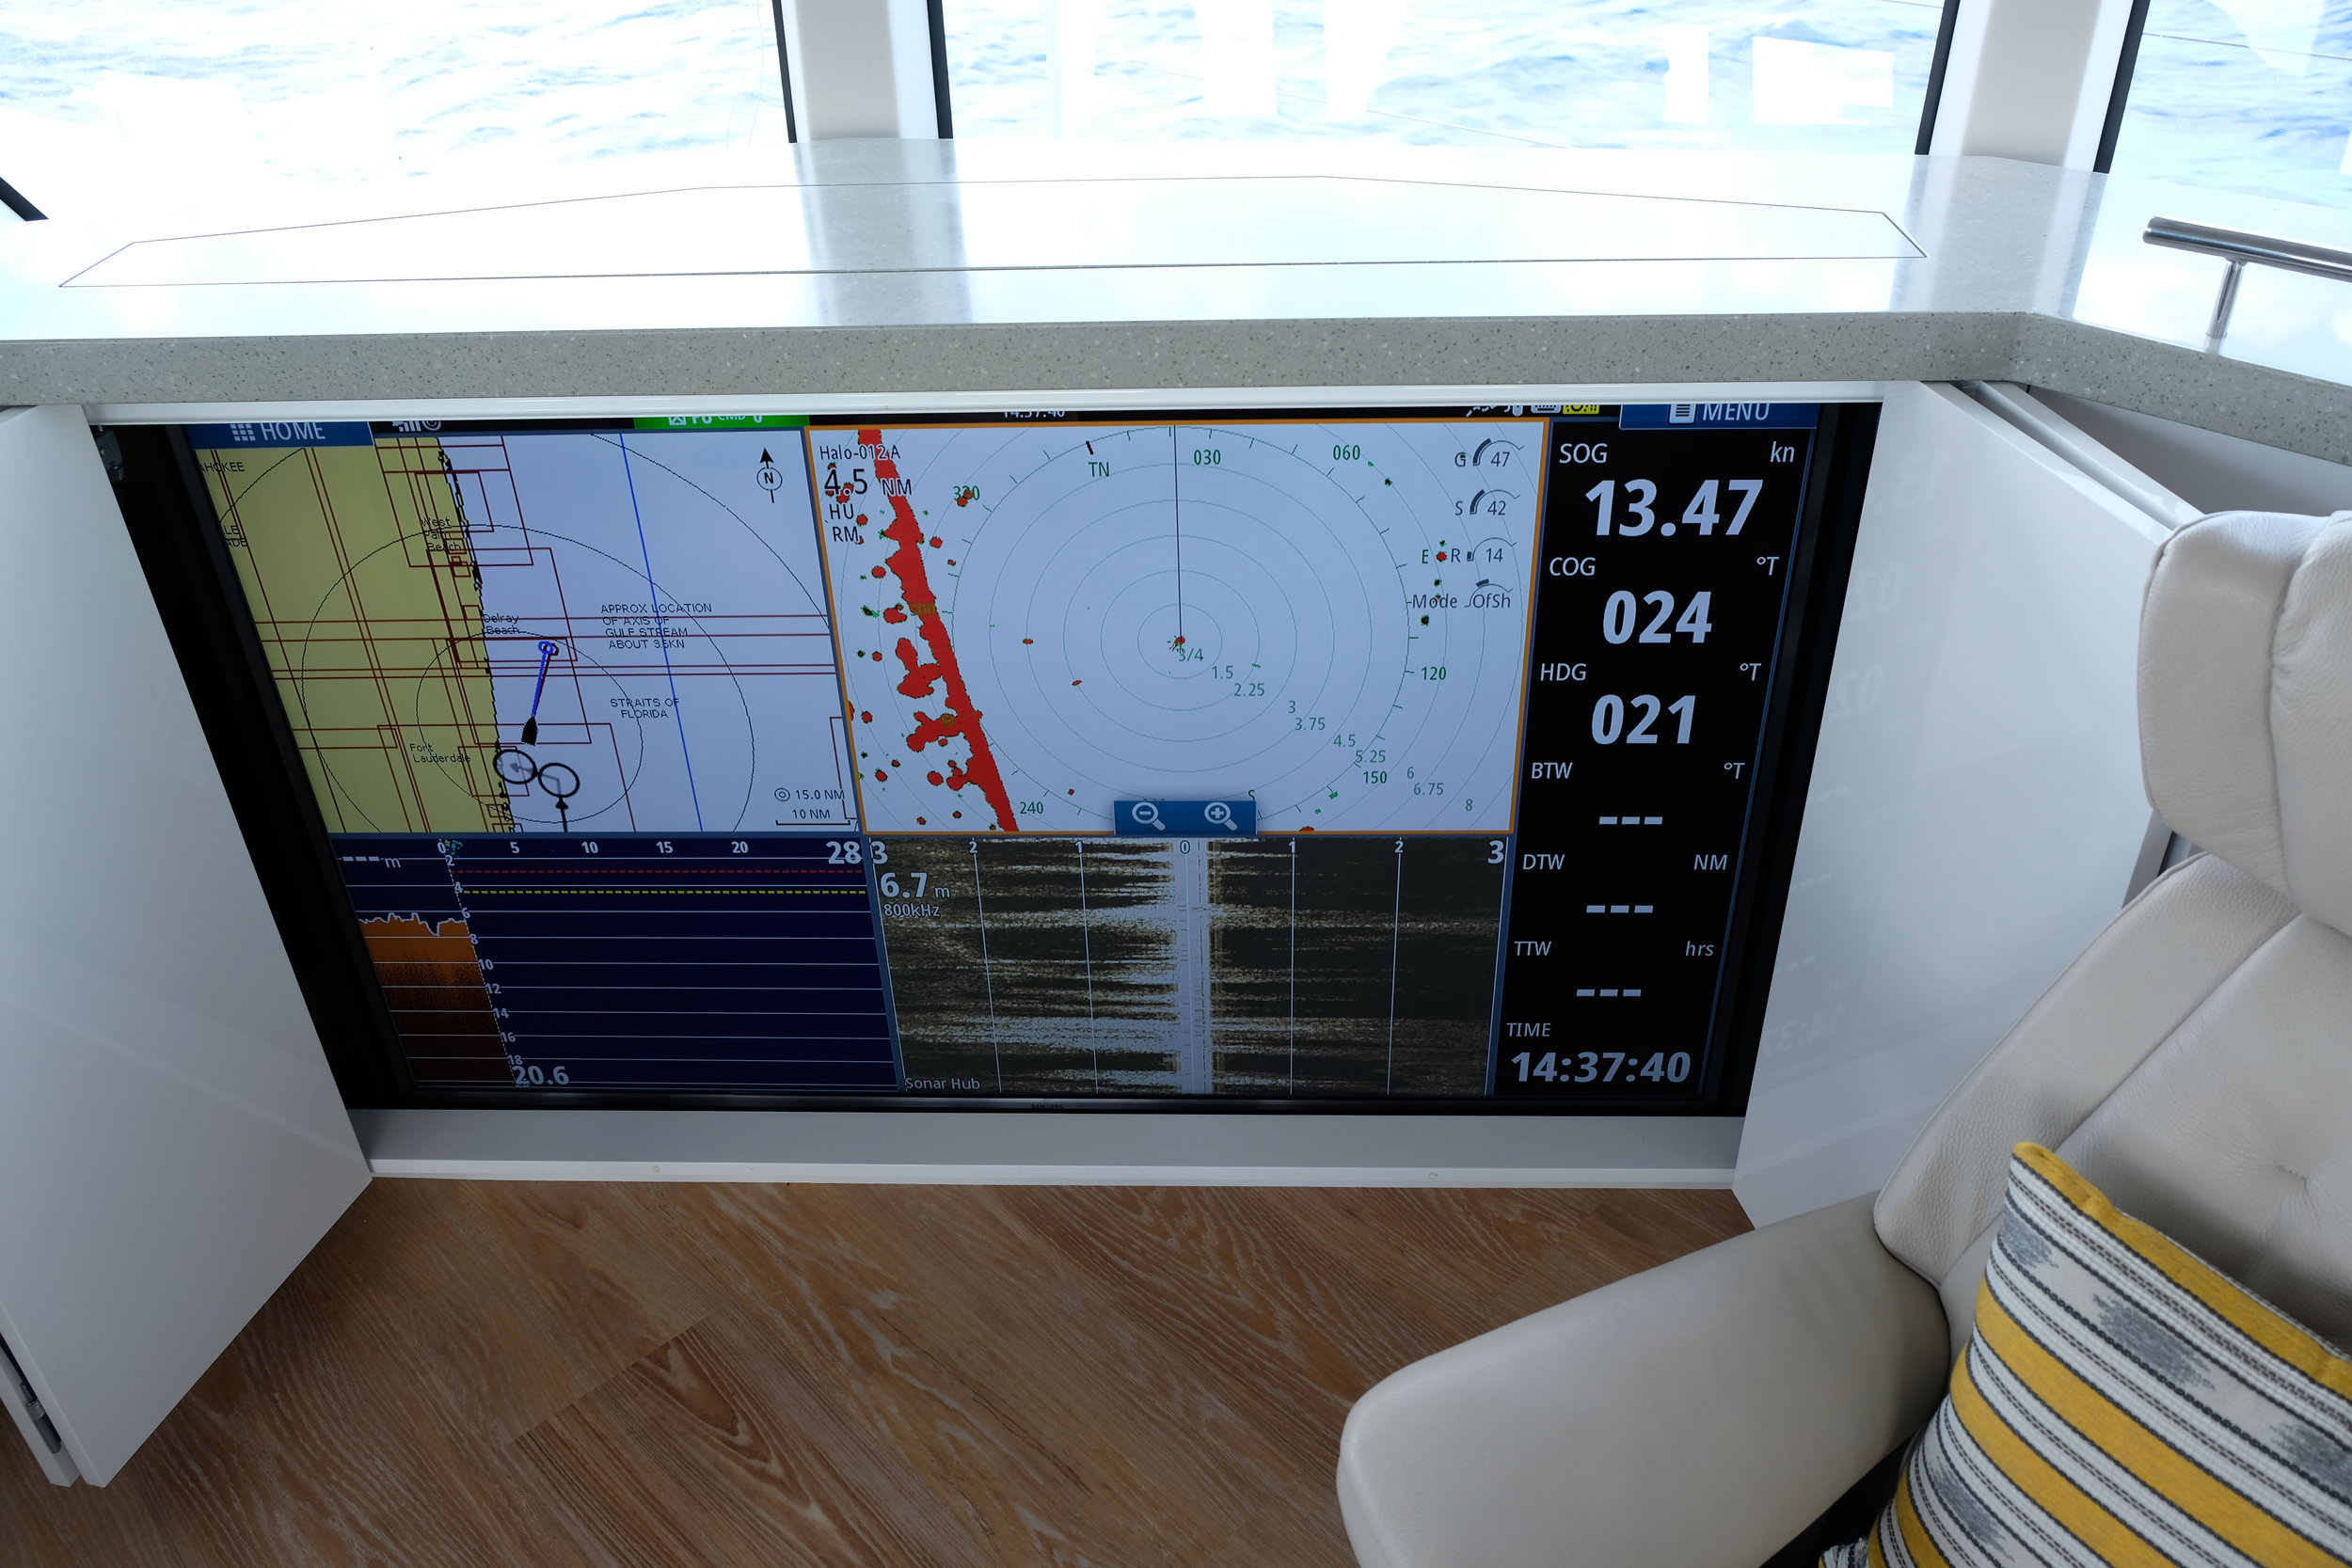 "Large screen display in the main saloon is controlled by a remote to display all variations of navigation and other information. Note our boat speed is 13.47 knots as conditions that have us alone in the ocean off Ft Lauderdale. ""You went out today!?!"""